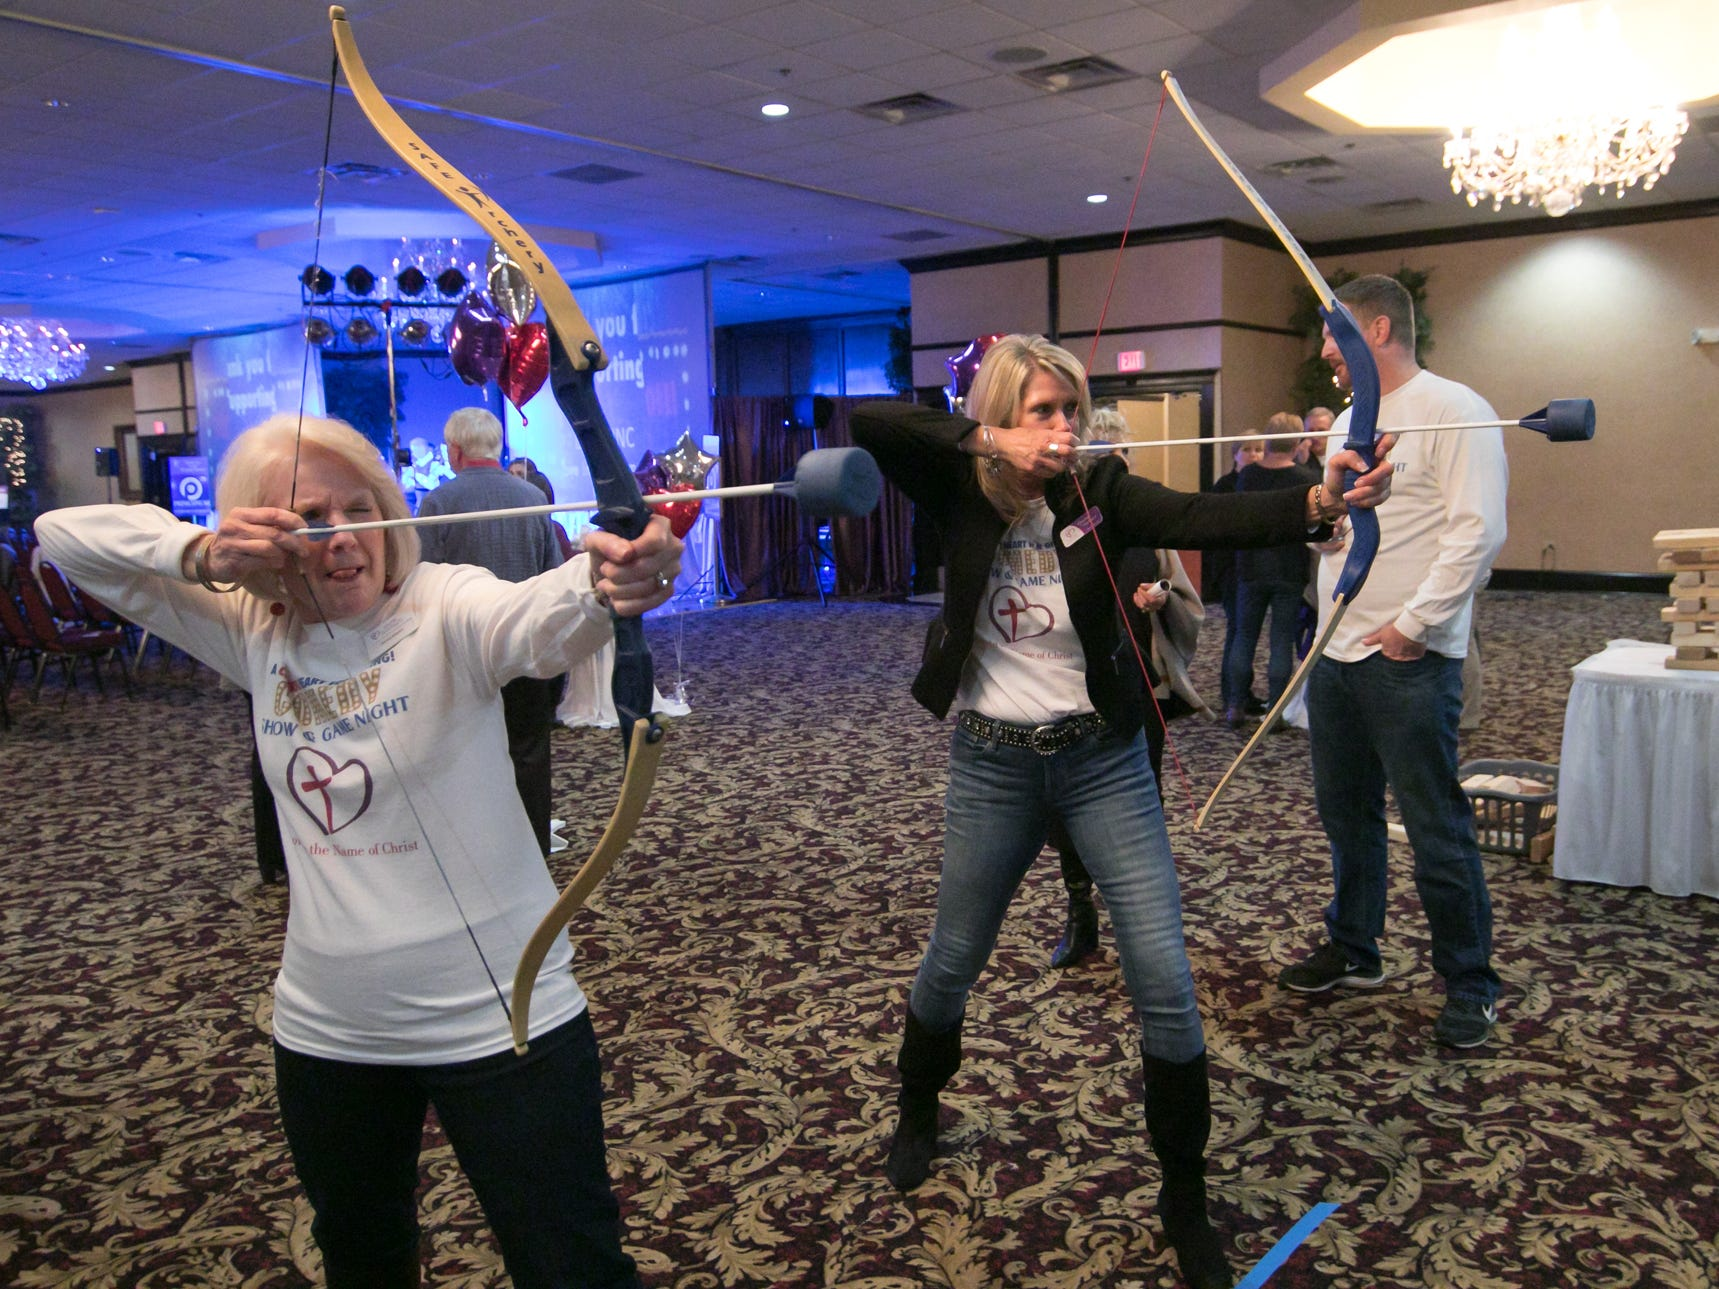 At left, Donna Alberta, development coordinator for Love, INC, and Queta Siefker, member of Love INC's board of directors, line up their shots in a archery hoverball game, part of the fundraising festivities of the organization's comedy night event Thursday, March 14, 2019.